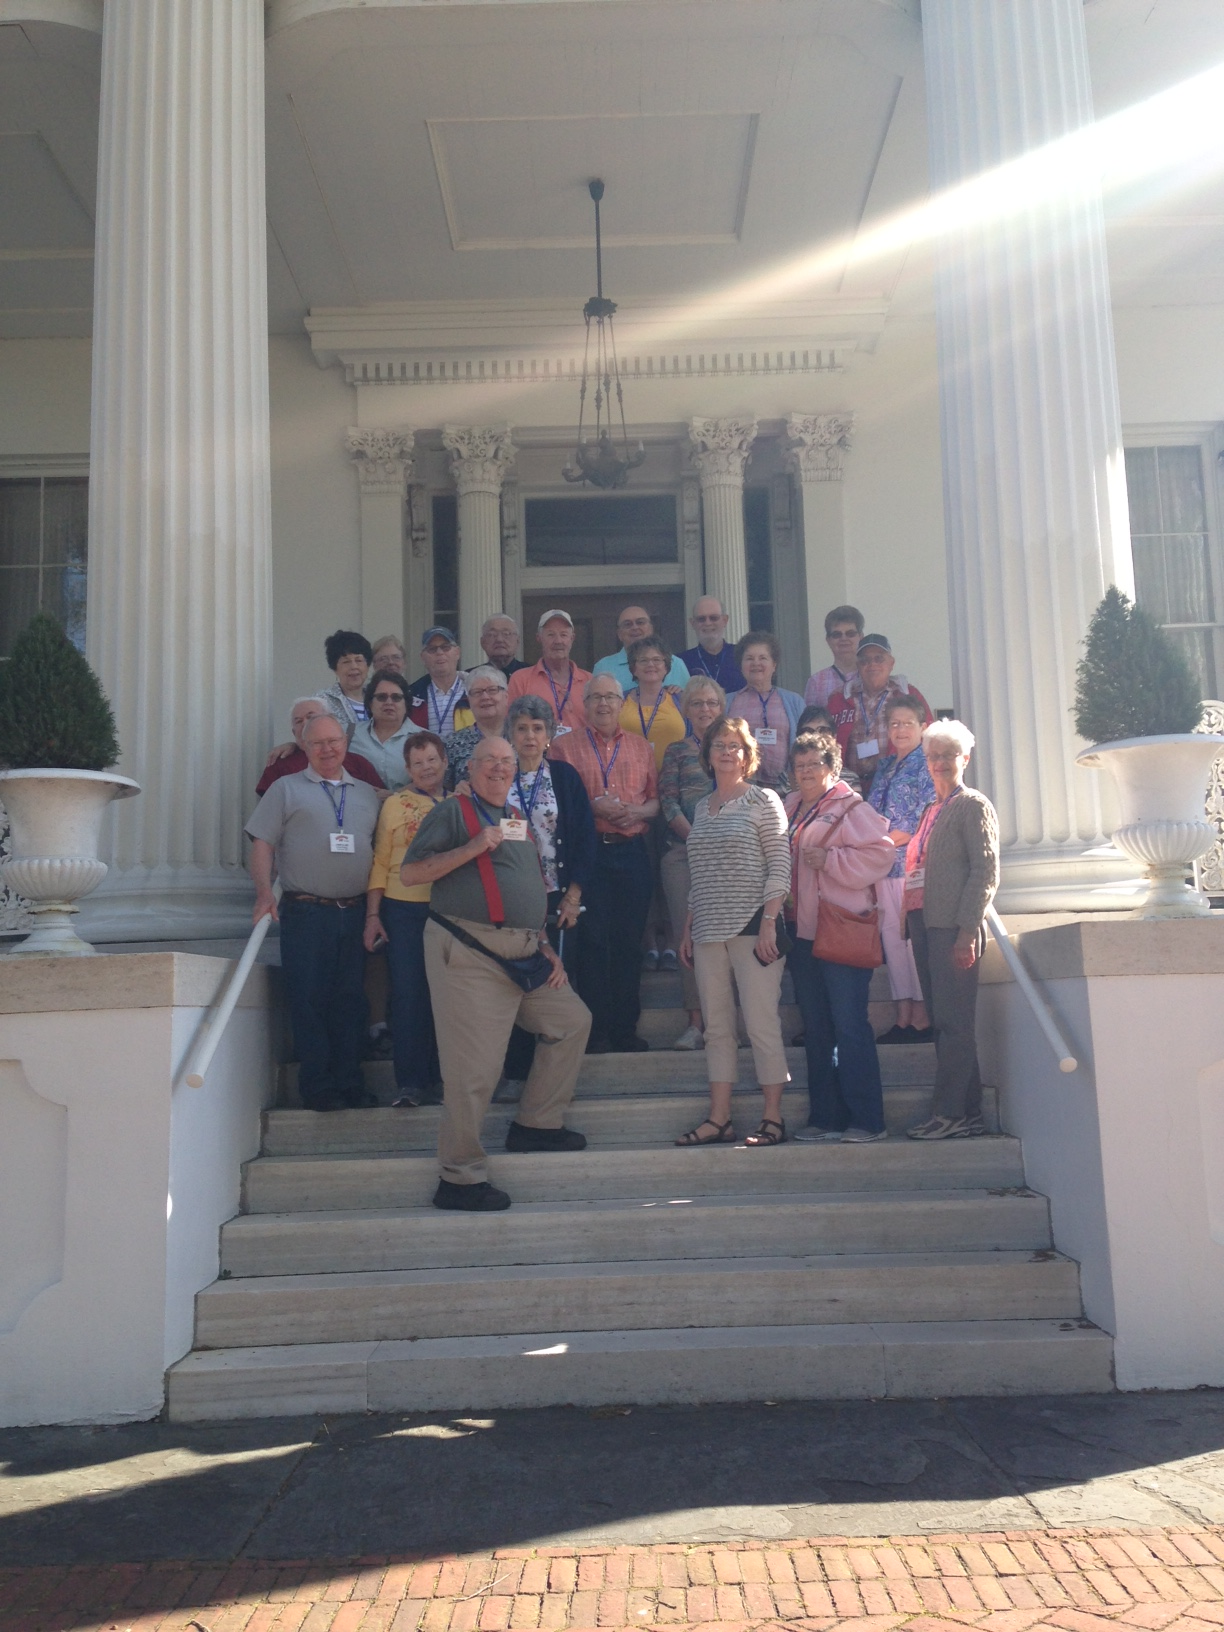 Group Picture at Stanton Hall